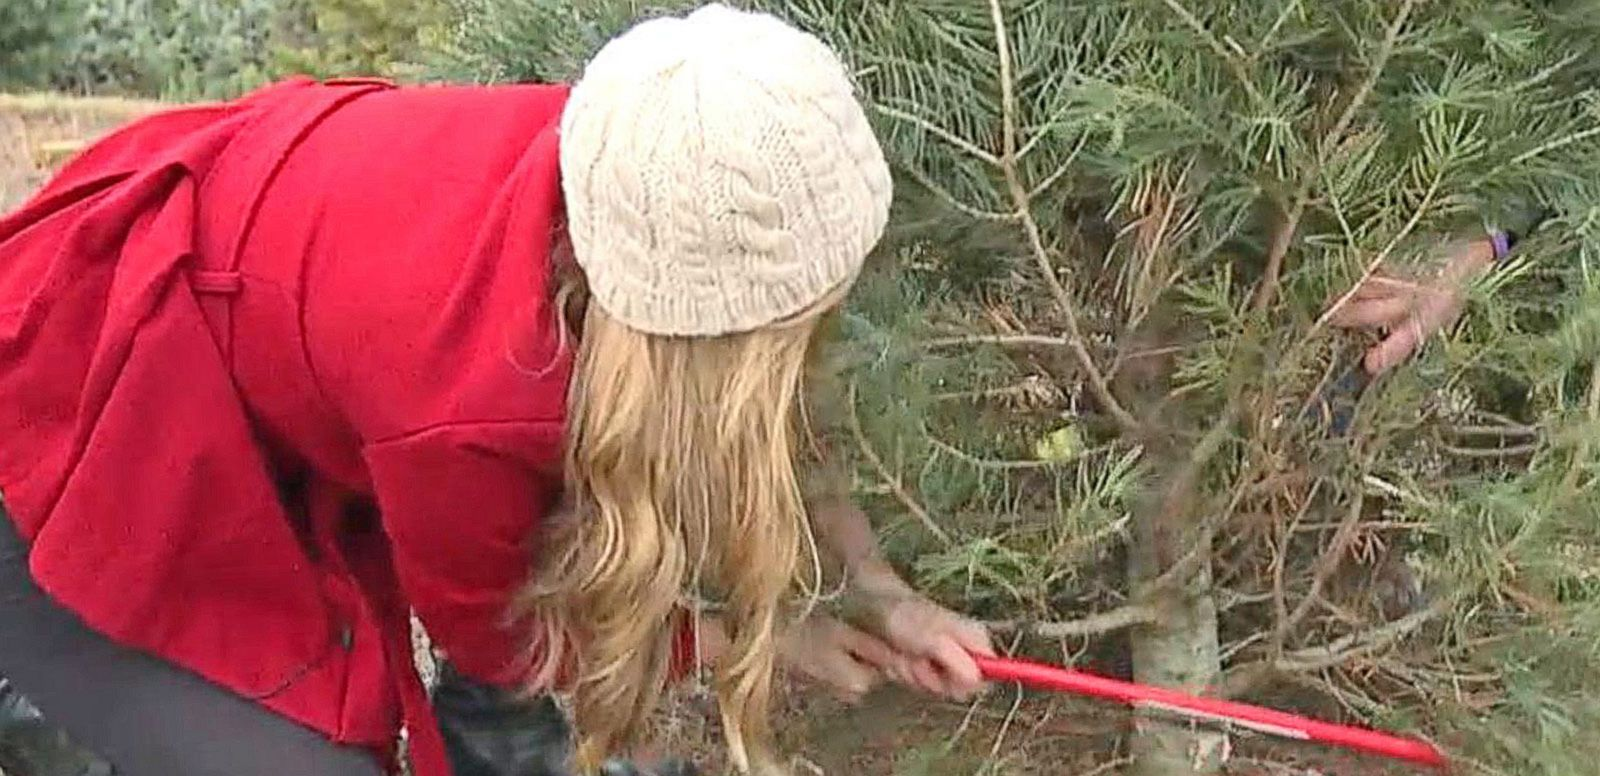 Cut Down Your Own Tree at a Christmas Tree Farm - ABC News